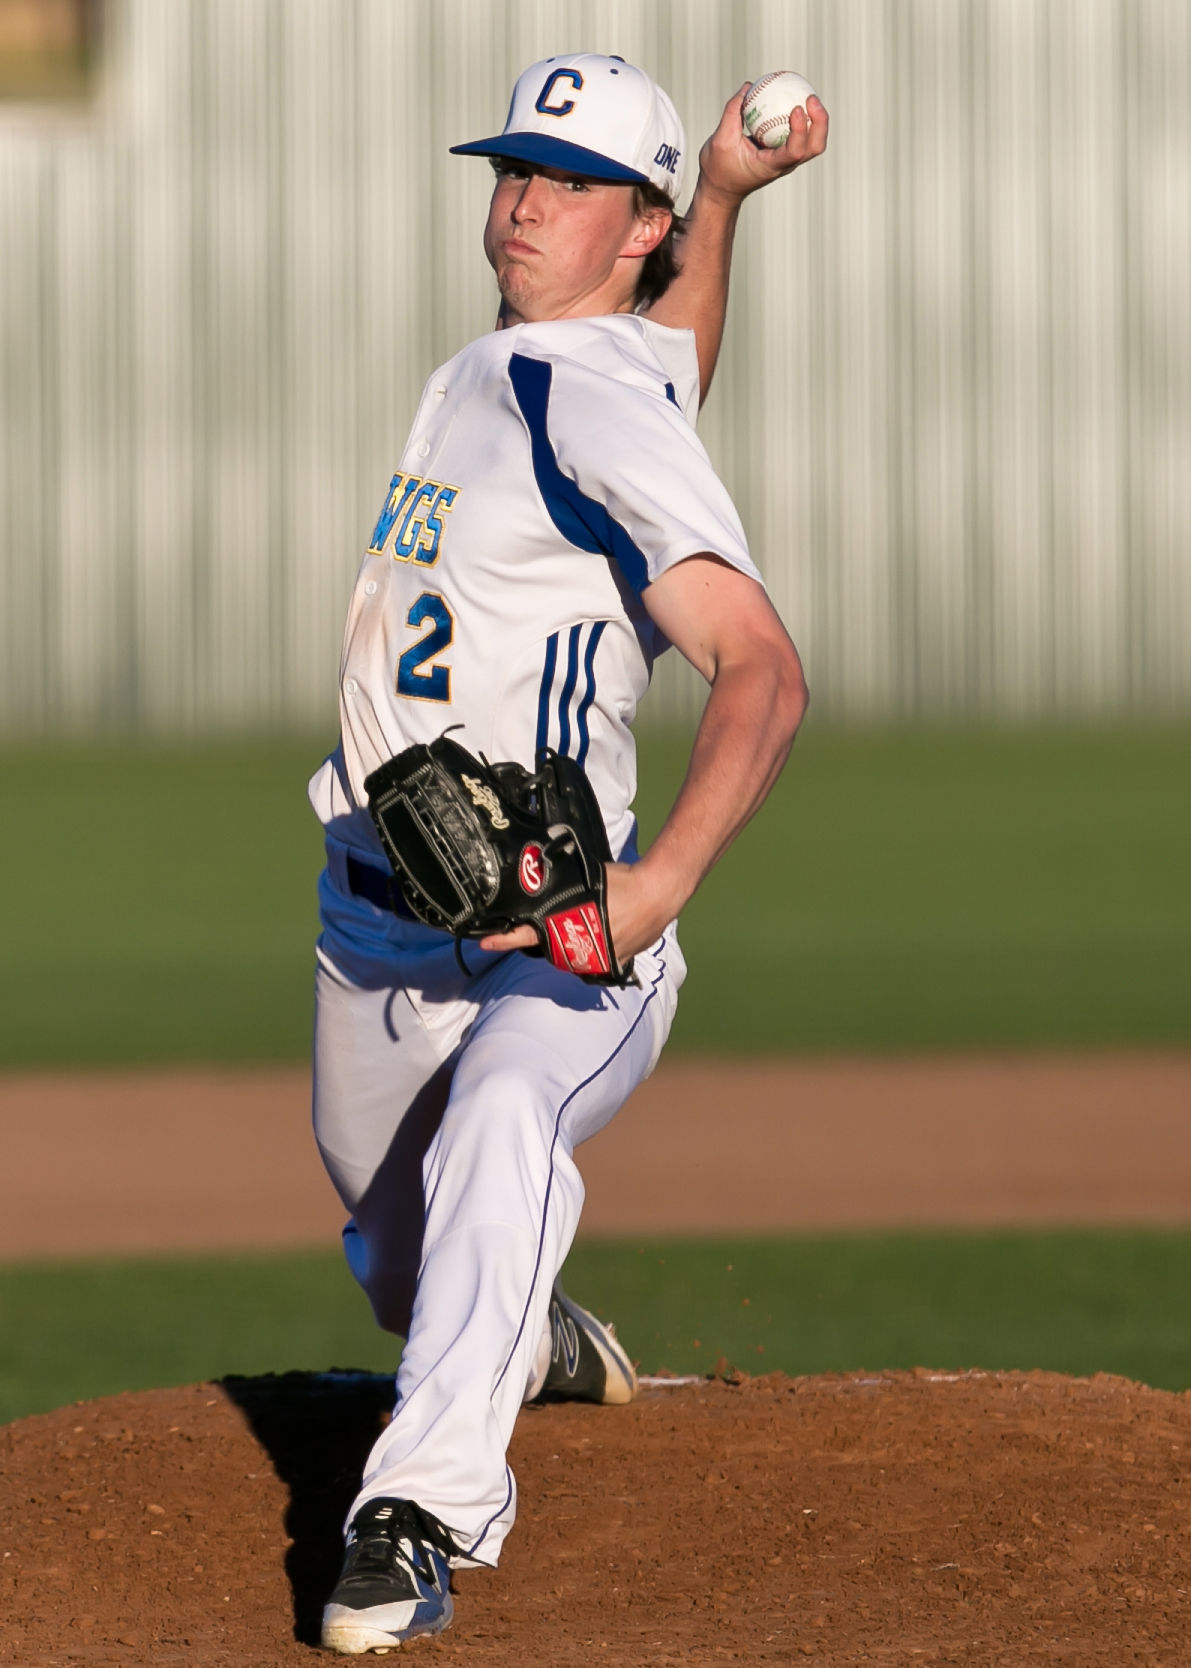 Shoemaker at Copperas Cove Baseball